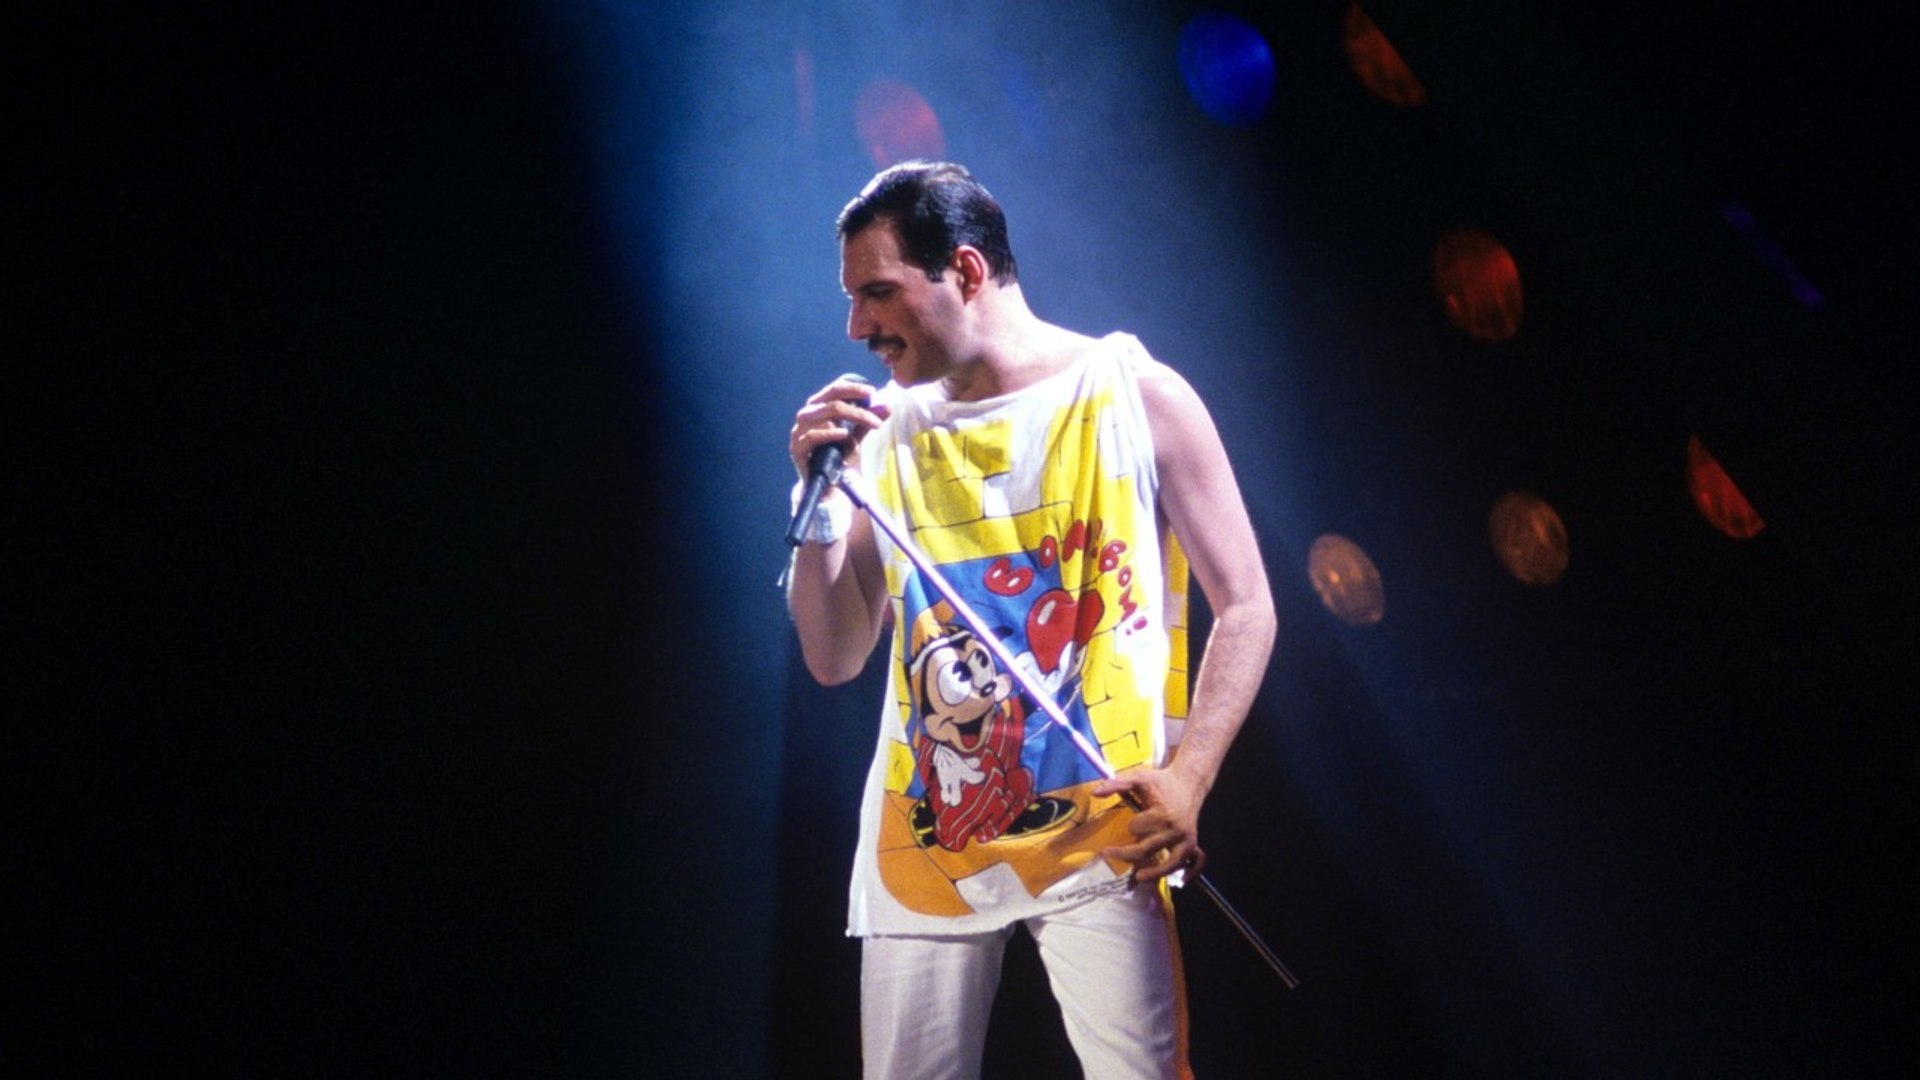 'Mr. Robot' Star to Play Freddie Mercury in Queen Biopic